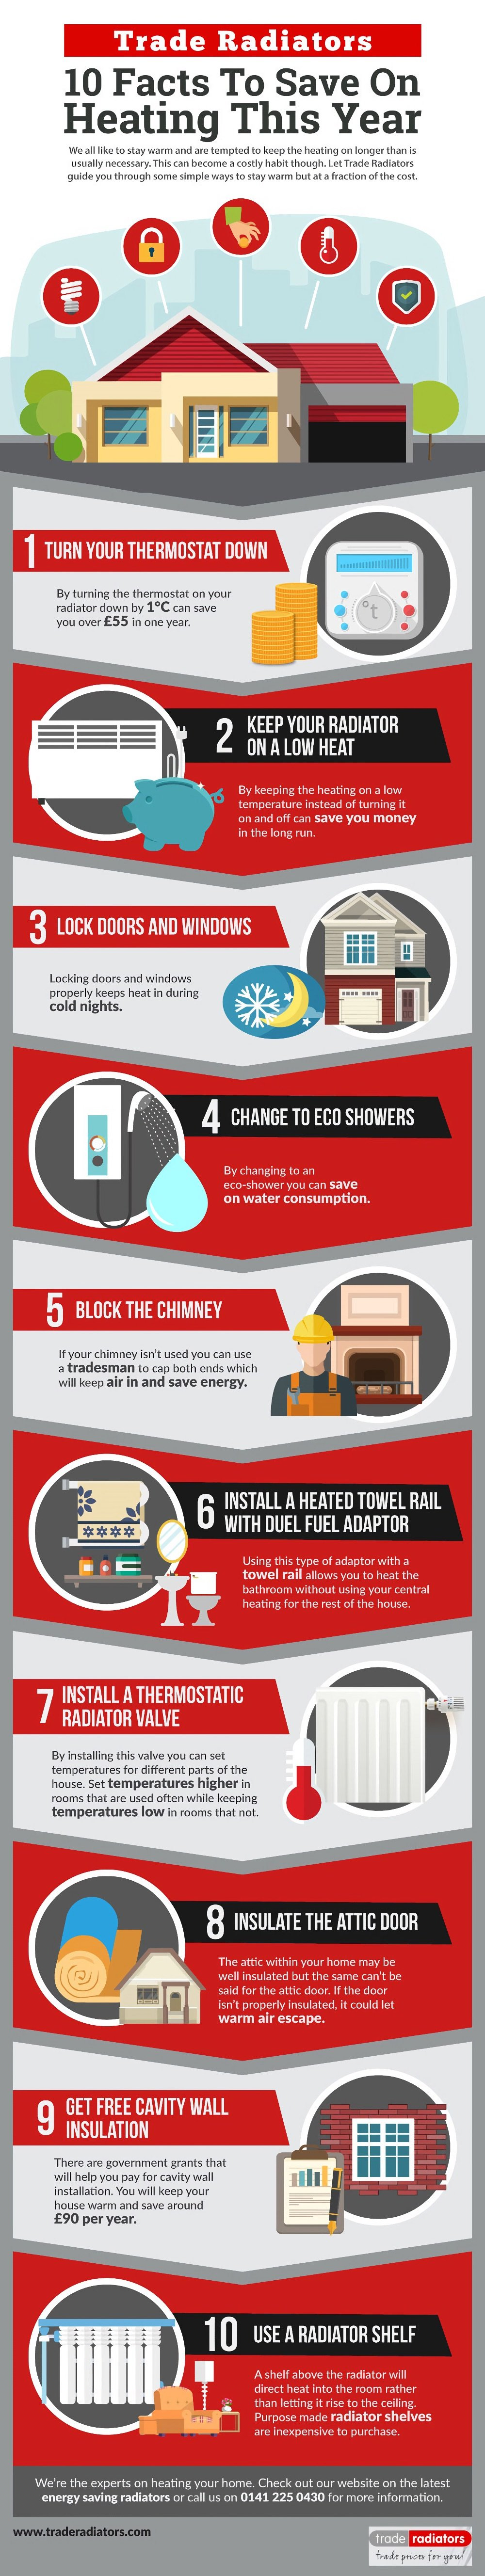 10 Facts to Save On Your Heating Costs This Year